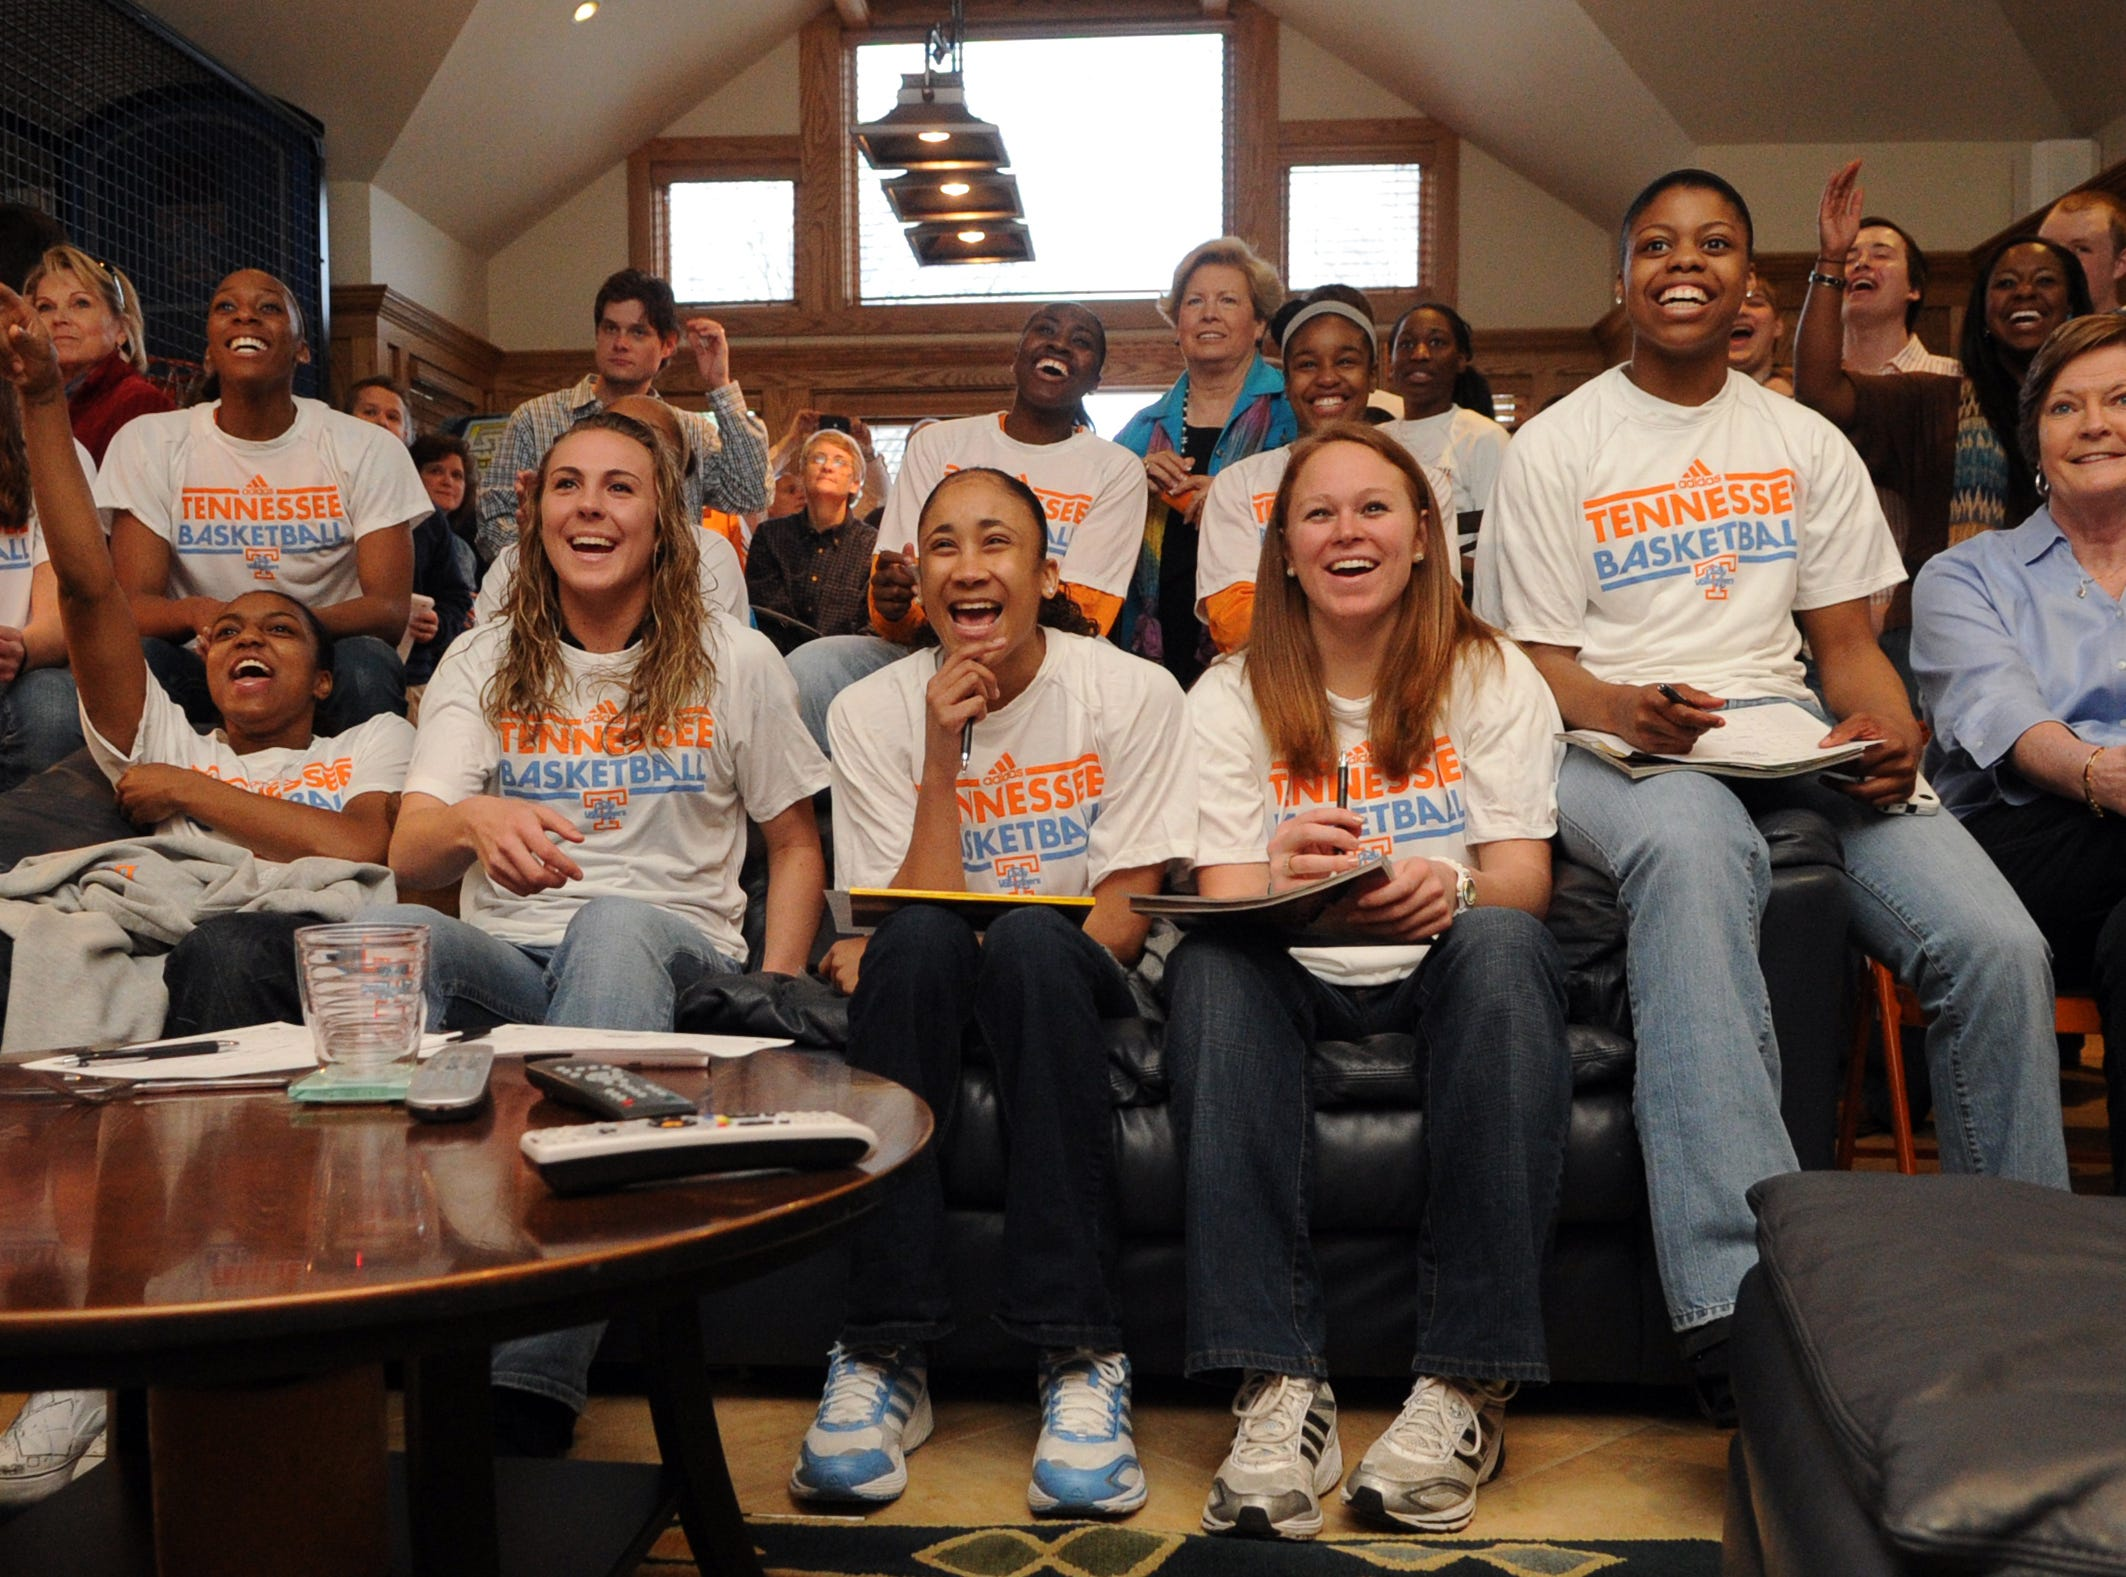 Members of the Lady Vols basketball team from left, Taber Spani, Glory Johnson, Kamiko Williams, Alicia Manning, Meighan Simmons, Shekinna Stricklen, University of Tennessee's women's athletic director Joan Cronan, Briana Bass, Sydney Smallbone, Lauren Avant, and head coach Pat Summitt watch highlights of themselves during the NCAA selection show viewing at Summitt's home on  Monday, March 14, 2011.